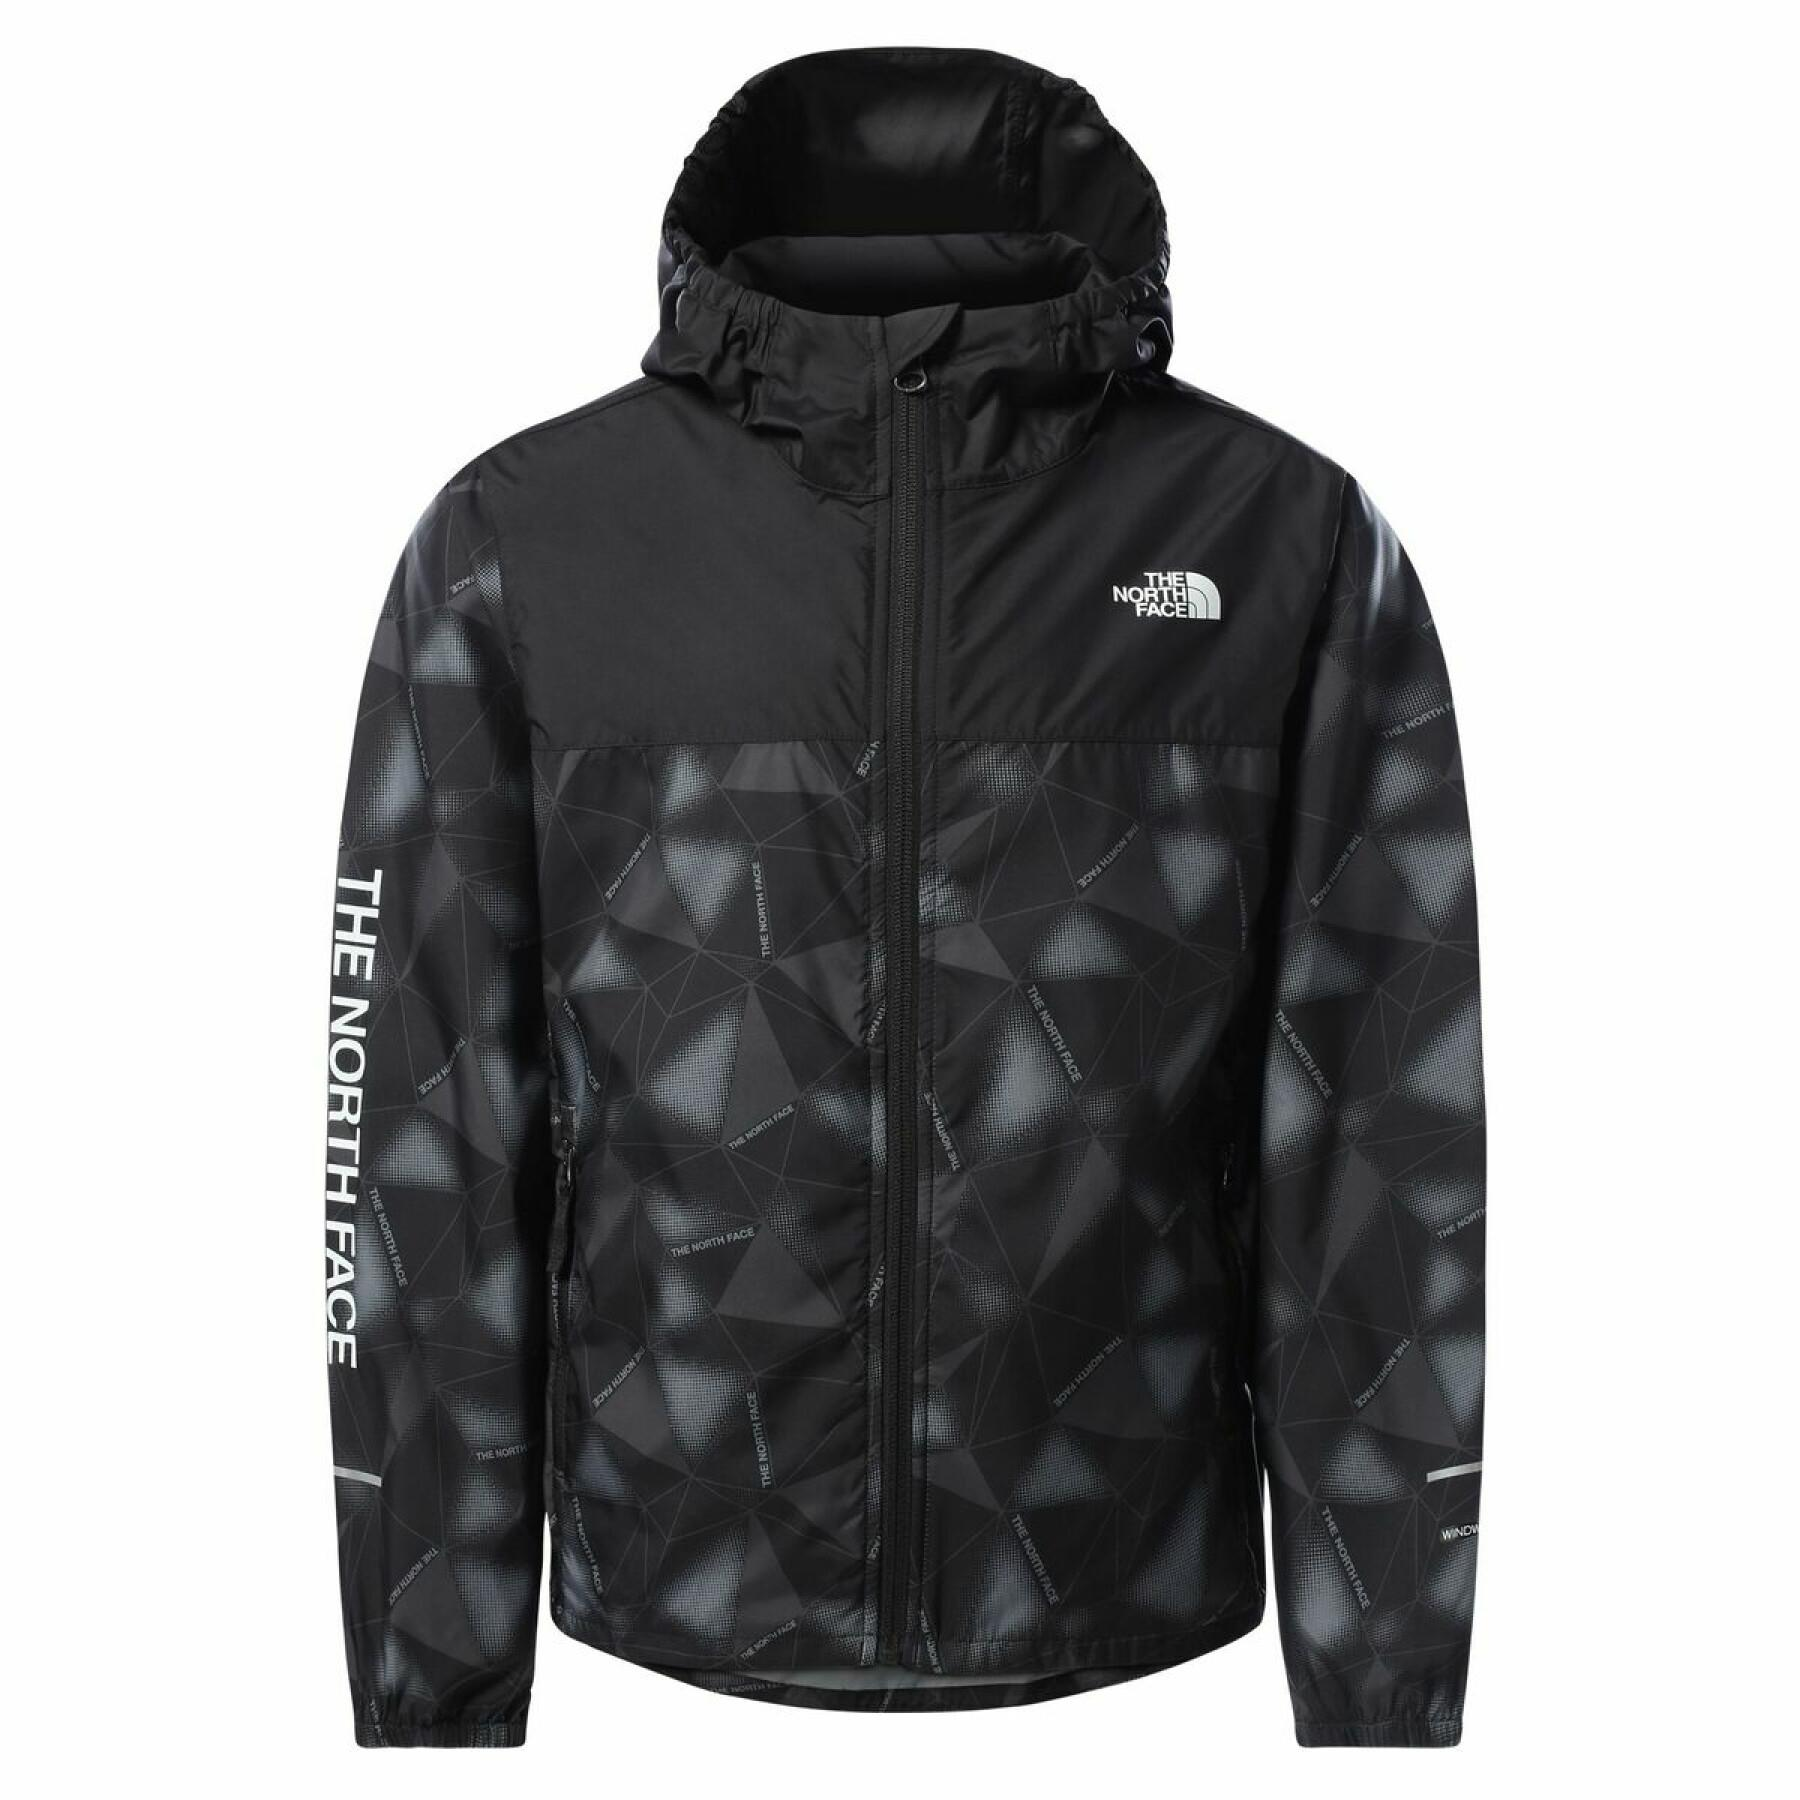 Children's jacket The North Face Reactor